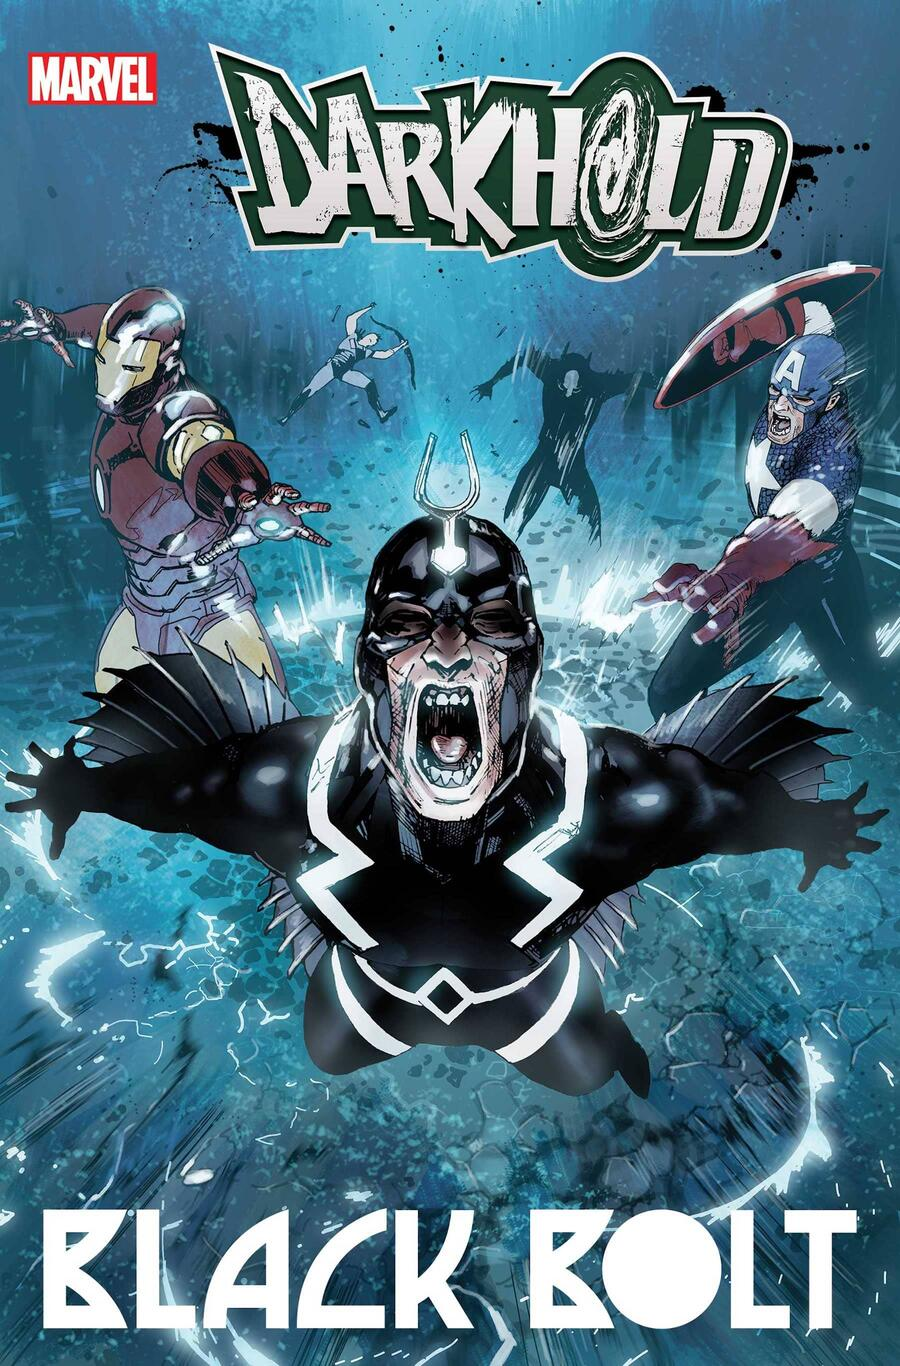 THE DARKHOLD: BLACK BOLT #1 cover by Travel Foreman